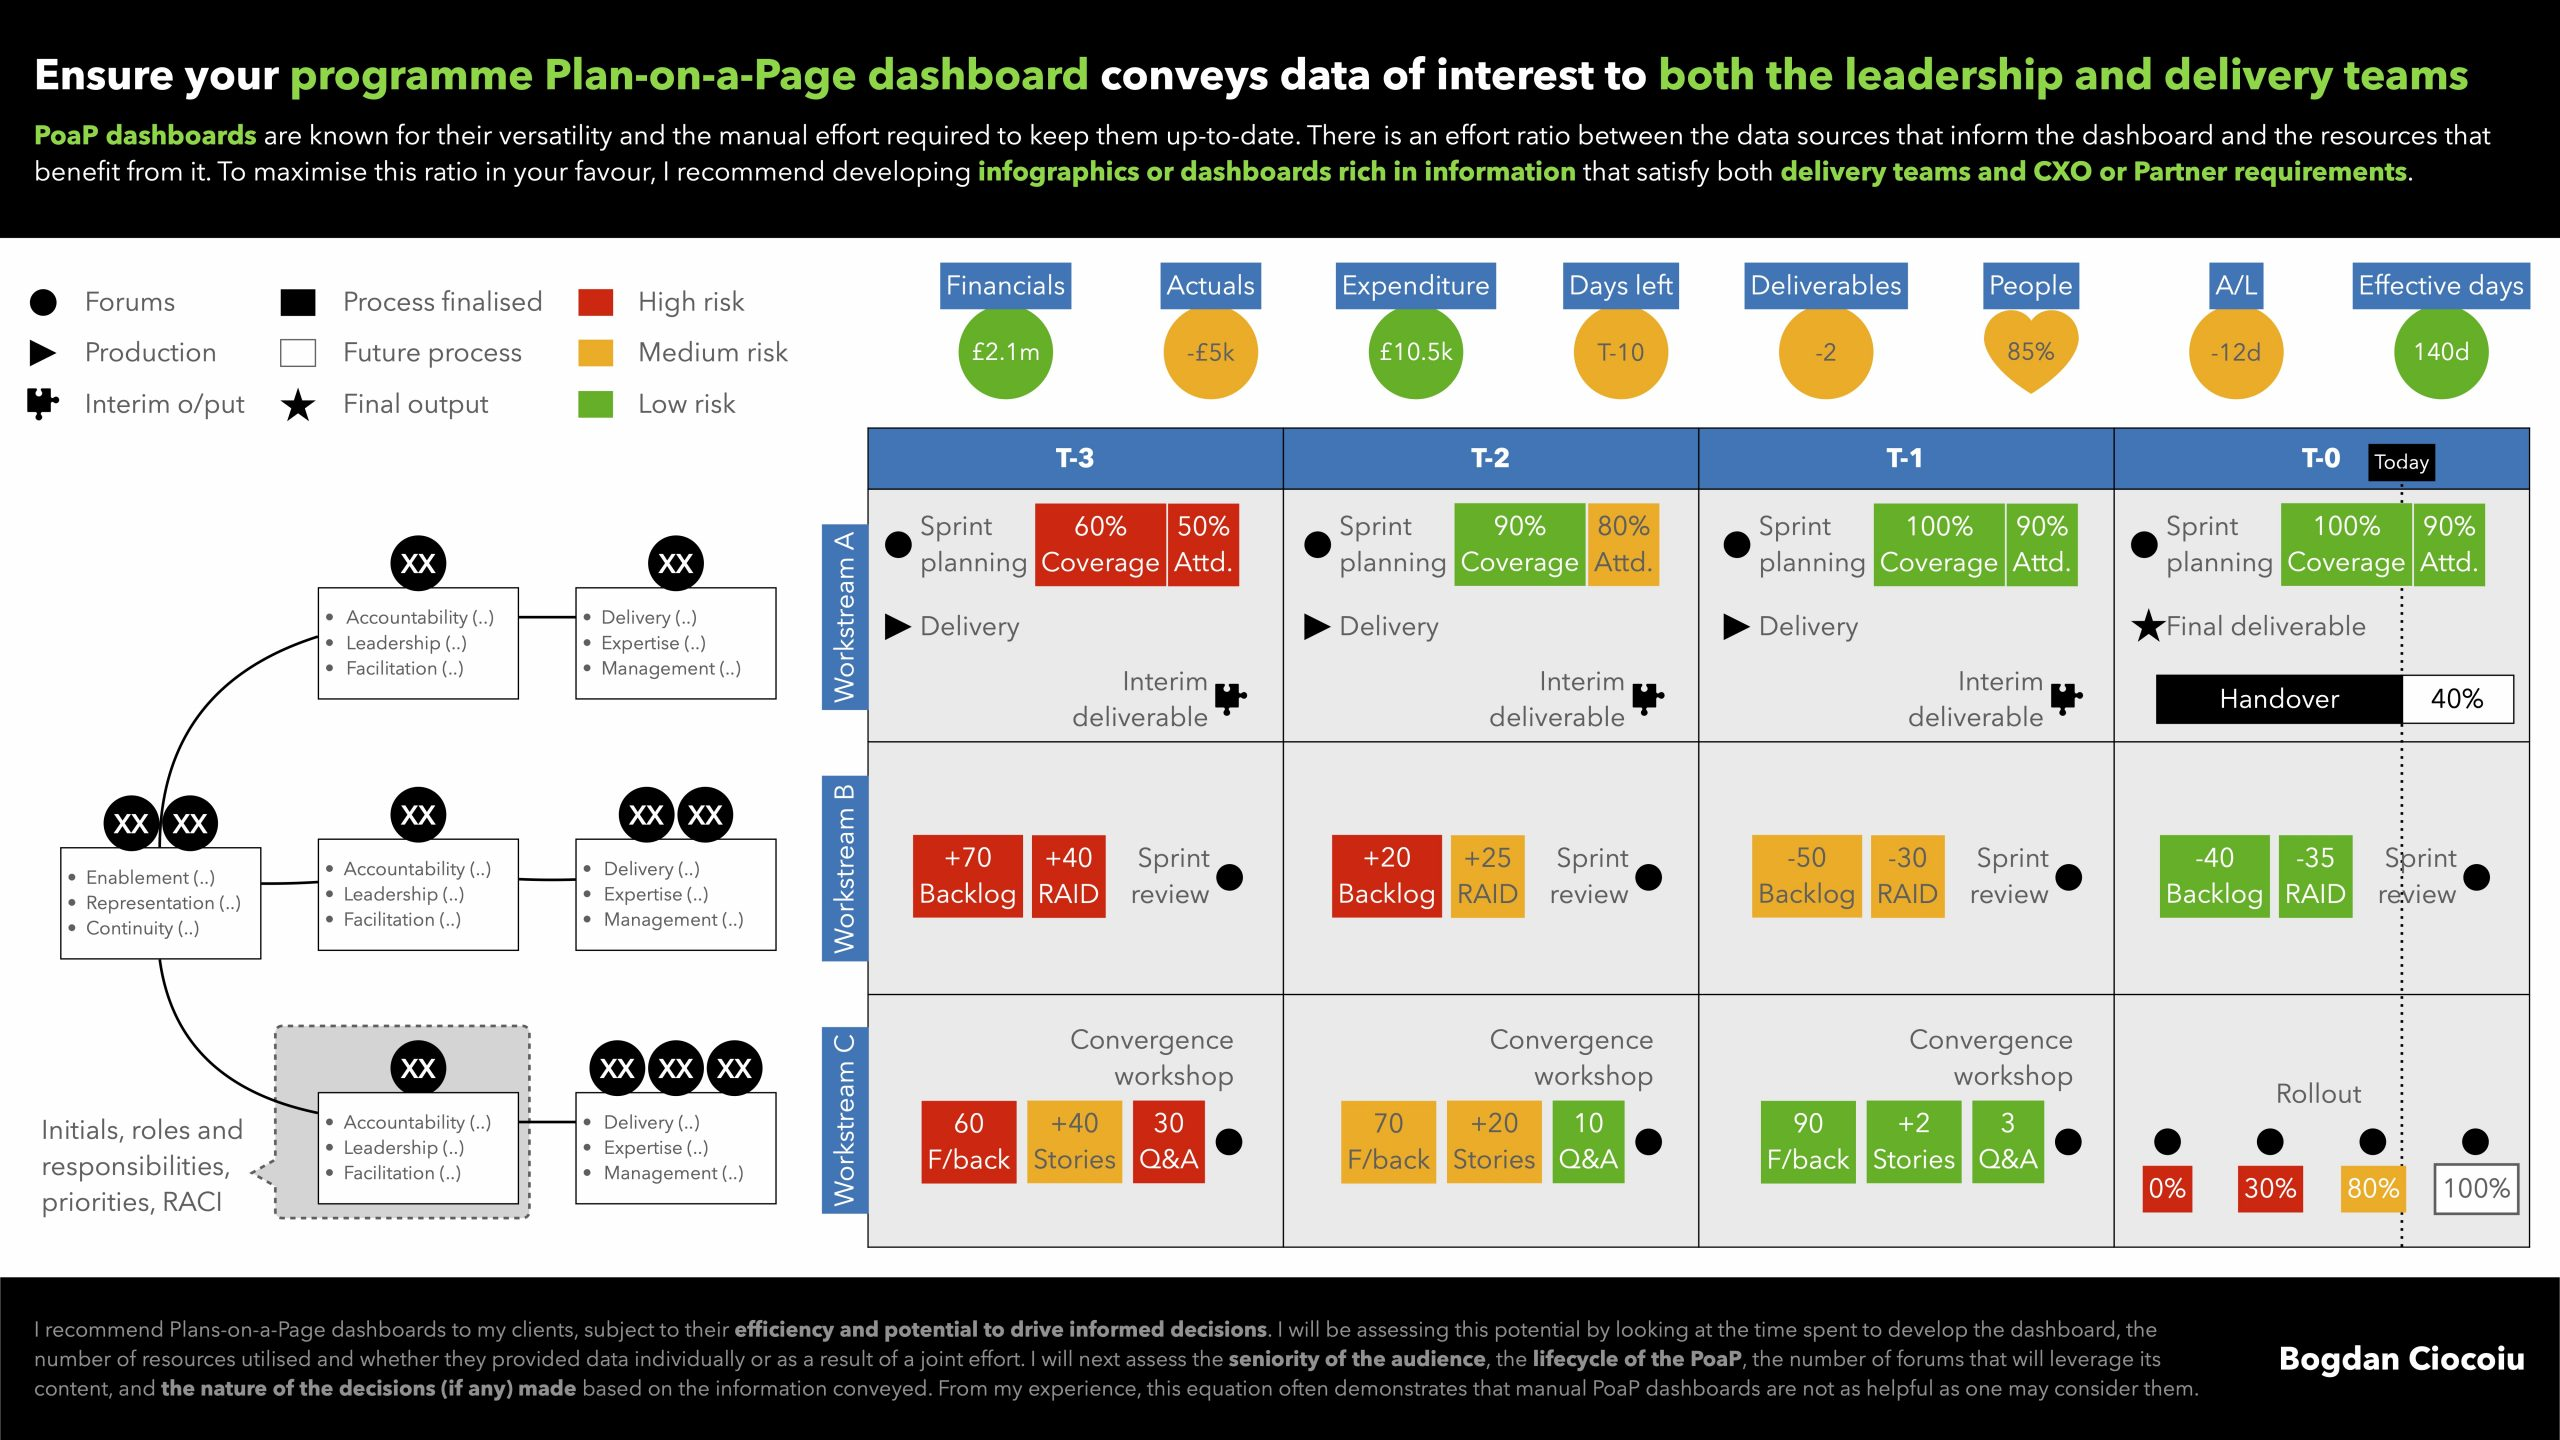 Ensure your programme Plan-on-a-Page dashboard conveys data of interest to both the leadership and delivery teams - Bogdan Ciocoiu